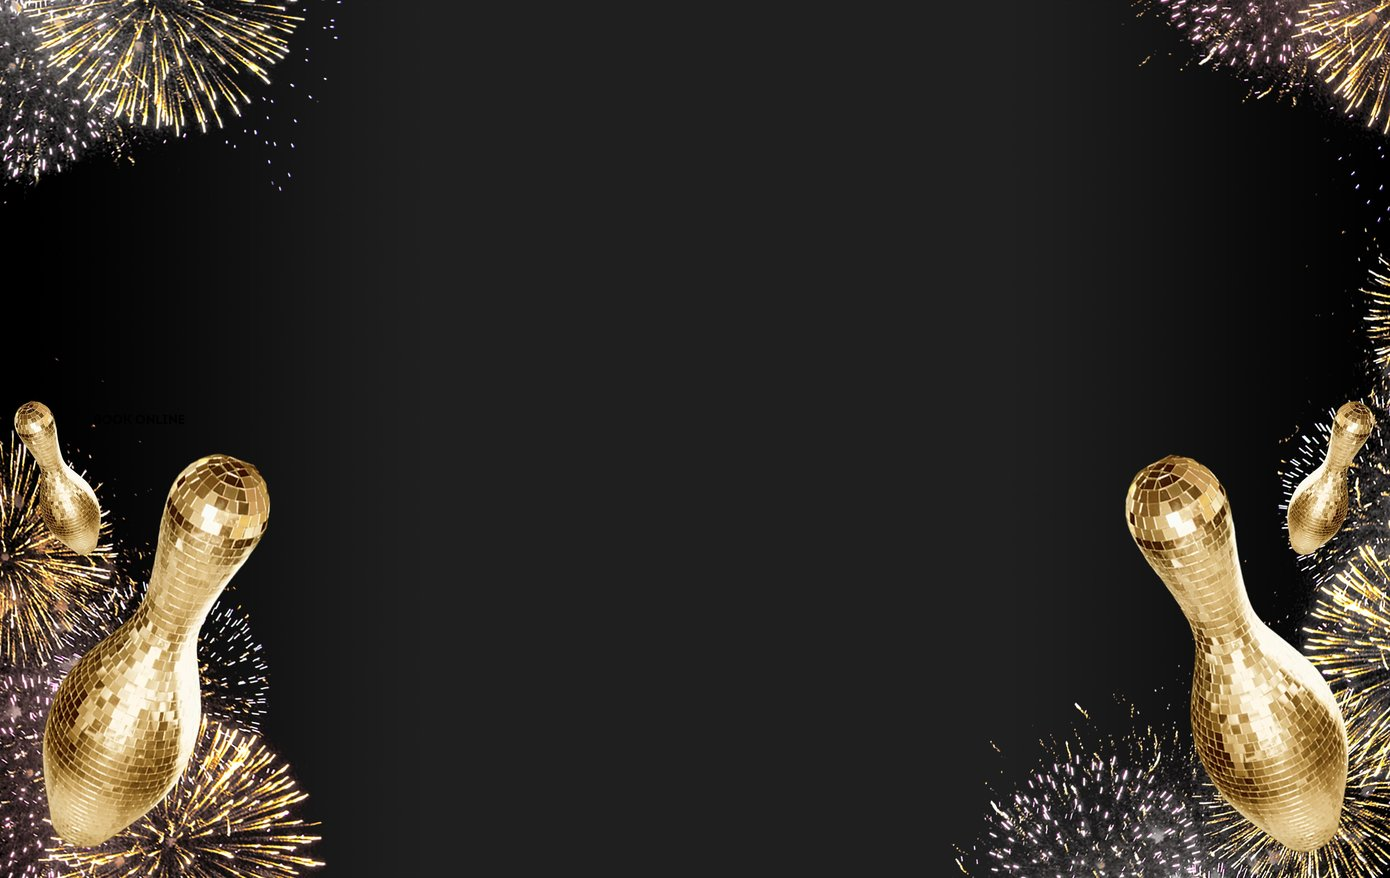 Fireworks and disco pins on a black background